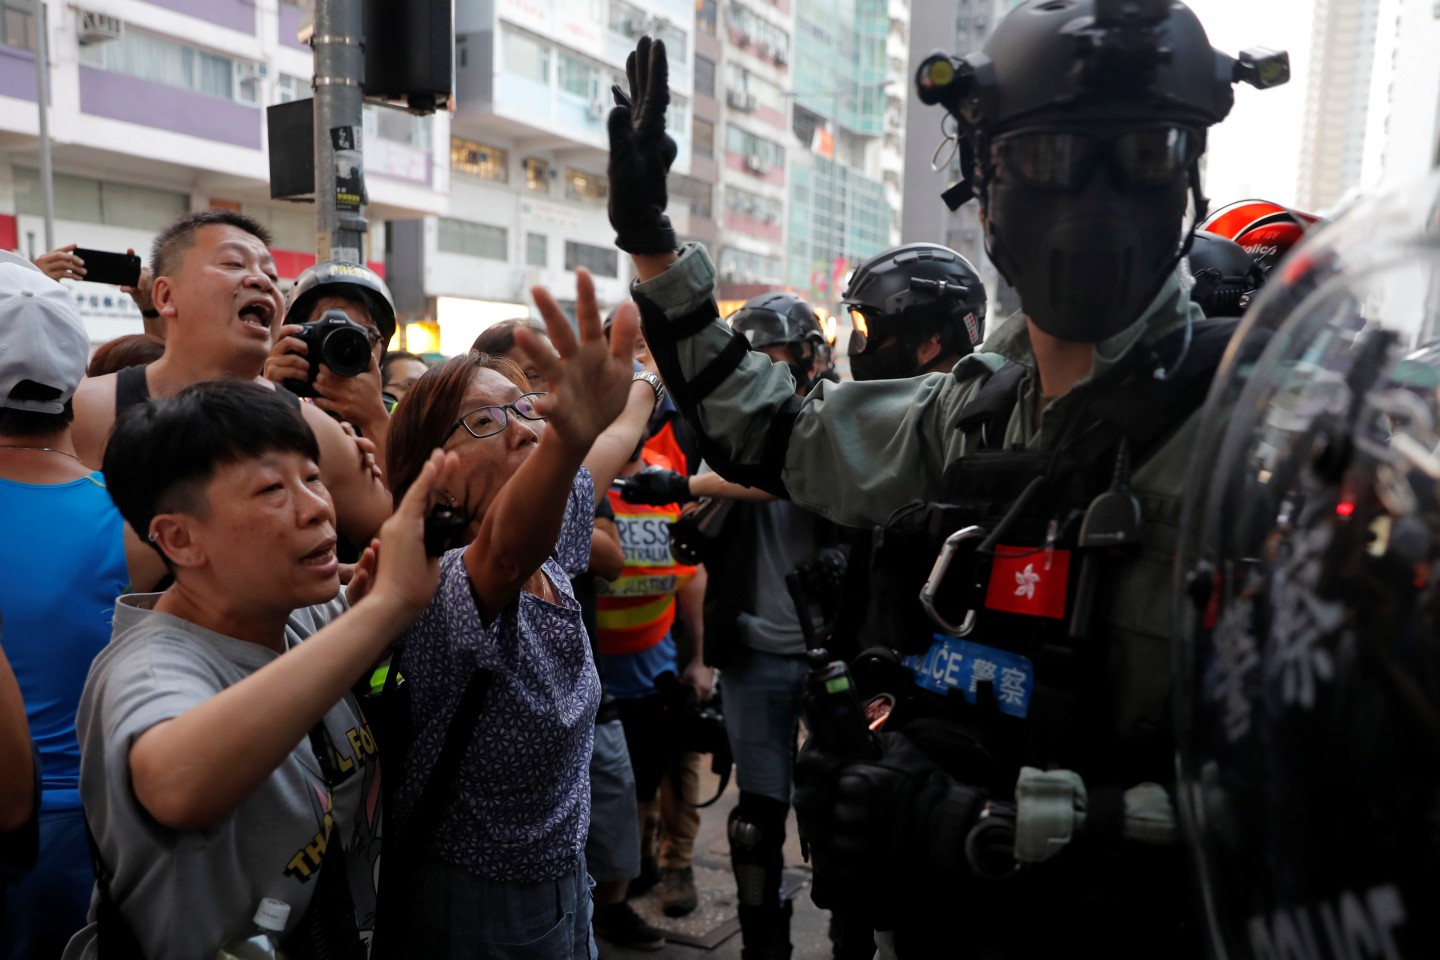 Officials have been indecisive in their bid to put the brakes on the protests, while the protestors are steeped in foolish acts that accelerate Hong Kong's destruction. (REUTERS/Susana Vera)